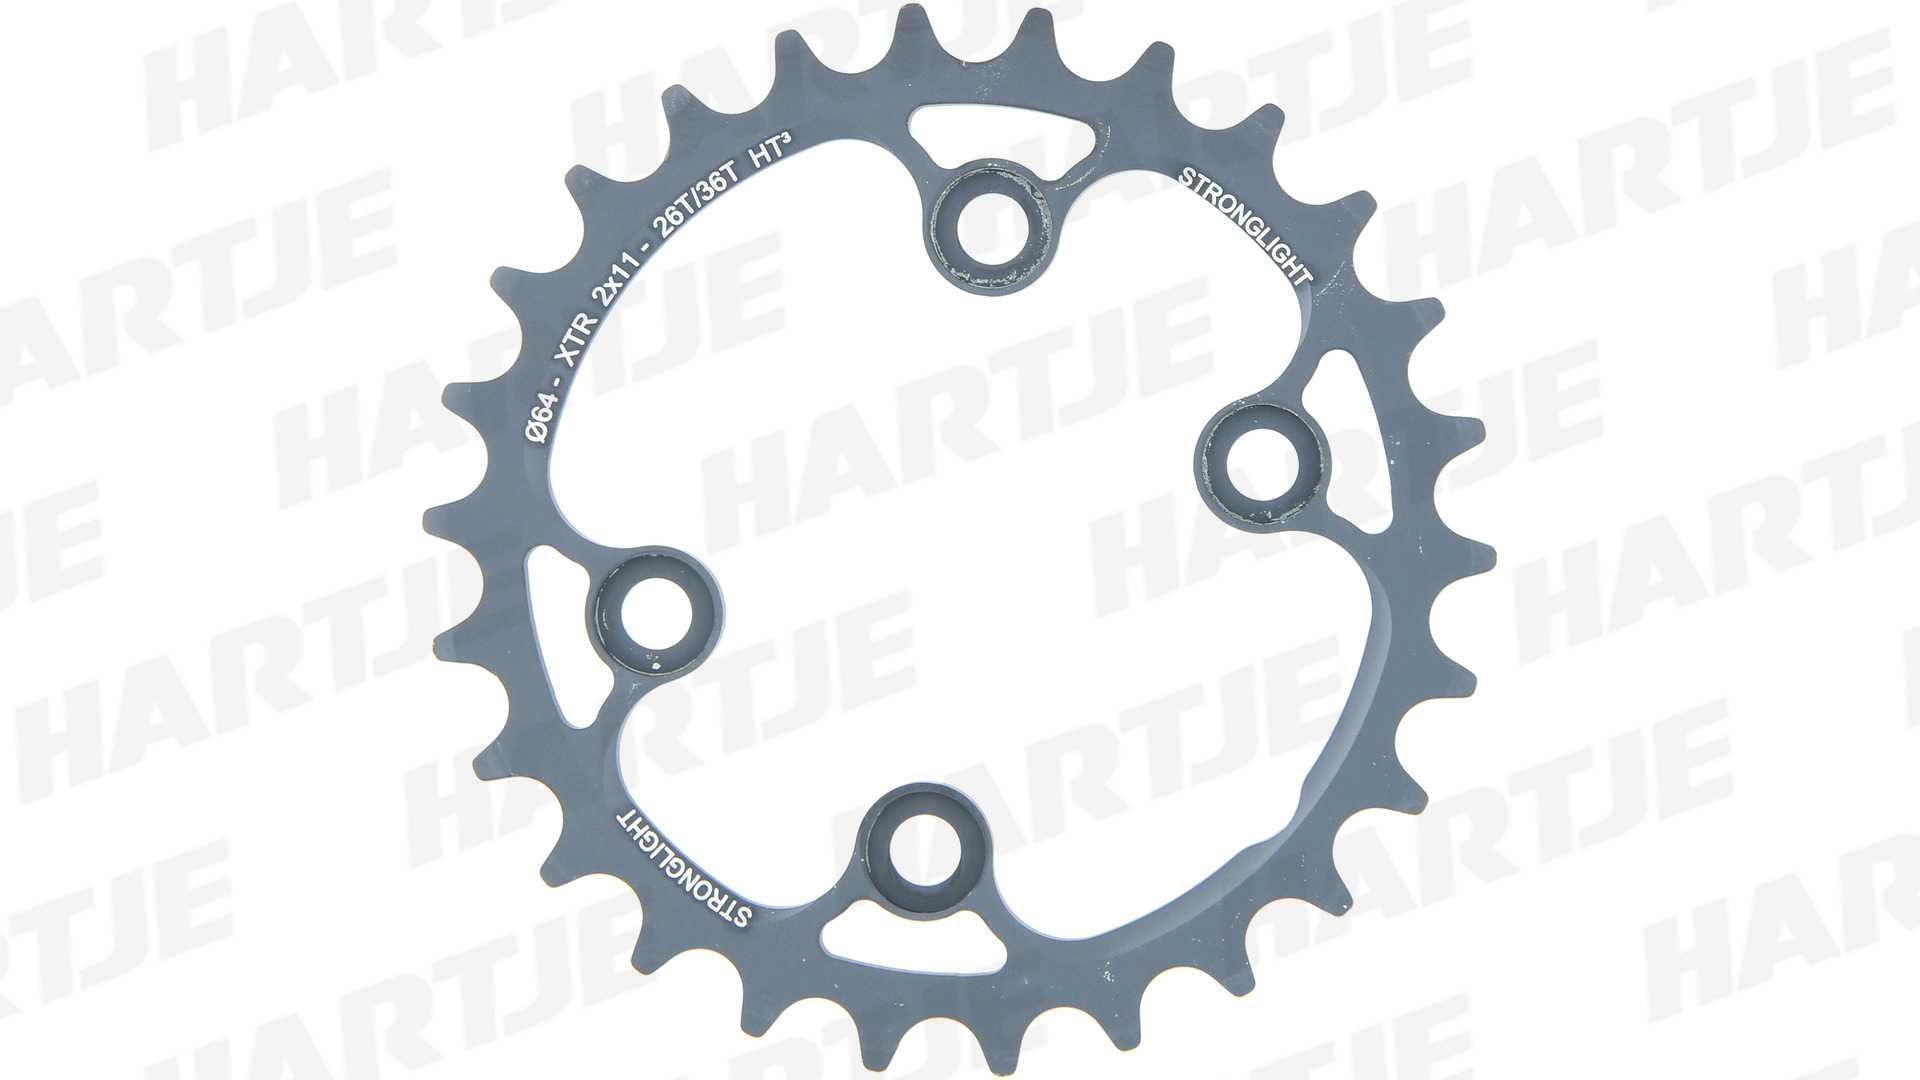 10b7d574d80 Stronglight Chainring HT3 26T inner chainring Shimano XTR FC-M9000 FC-M9020  2x11sp -